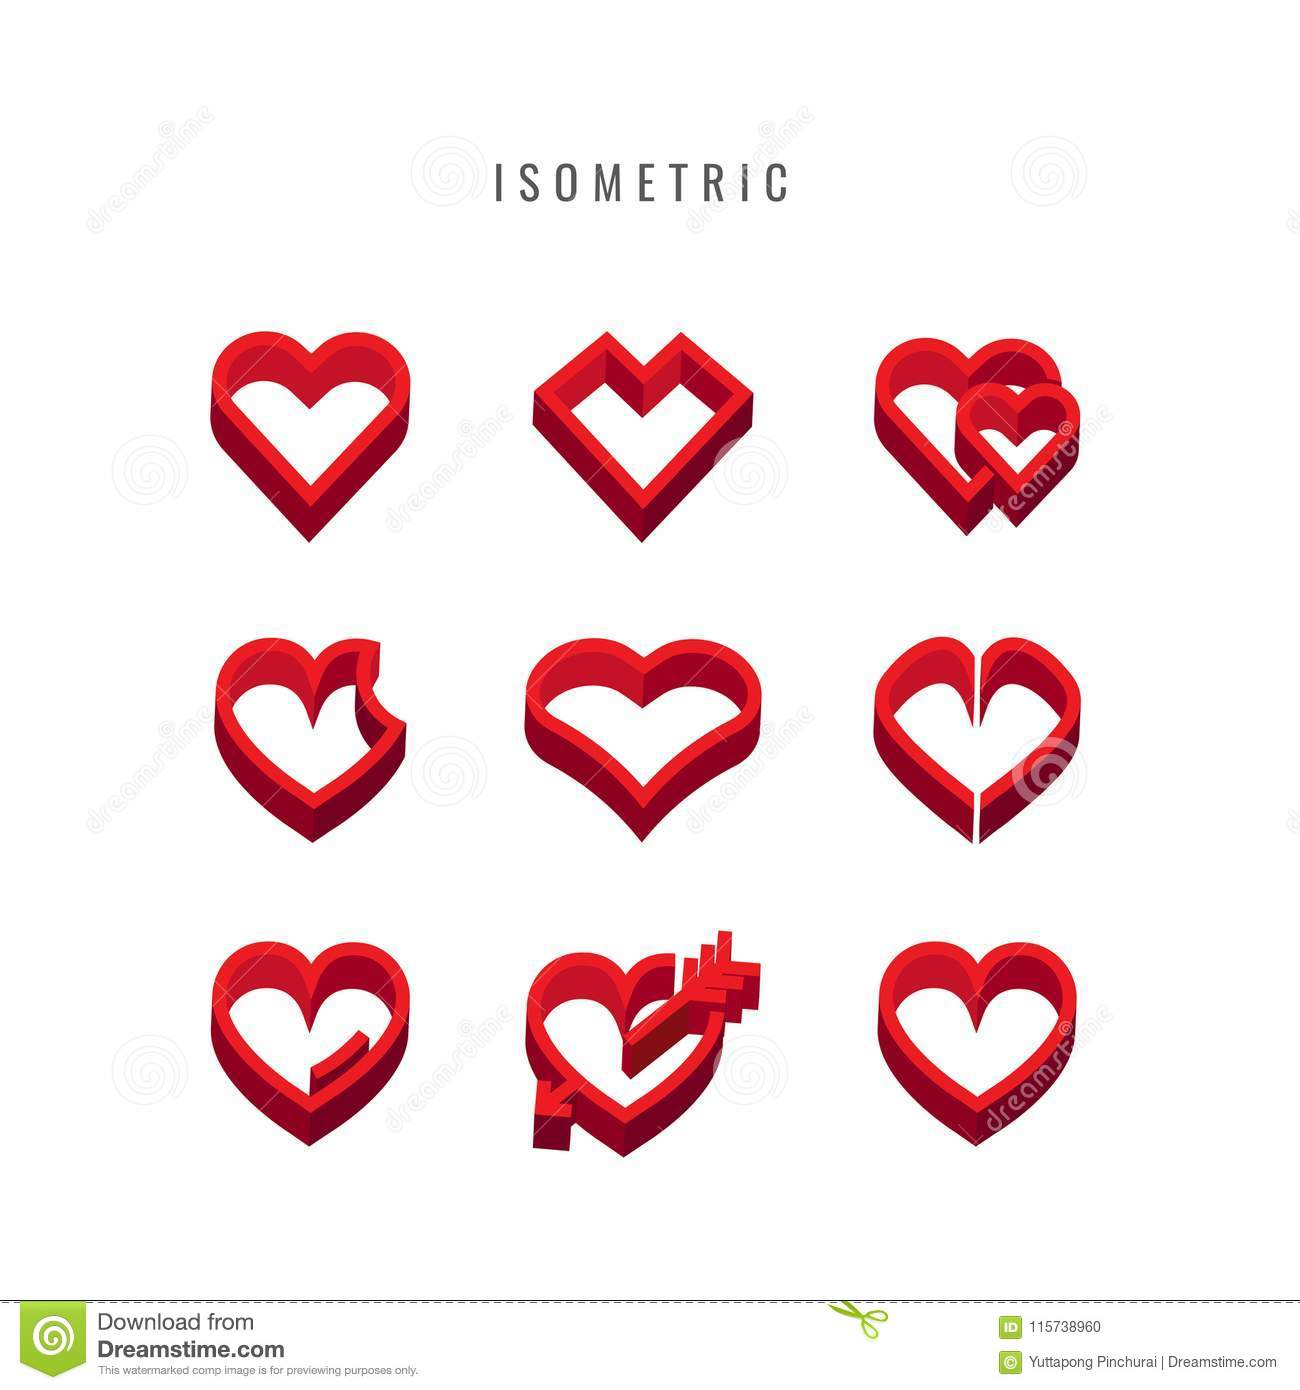 Isometric Icon Valentine Heart Shapes Collection Design